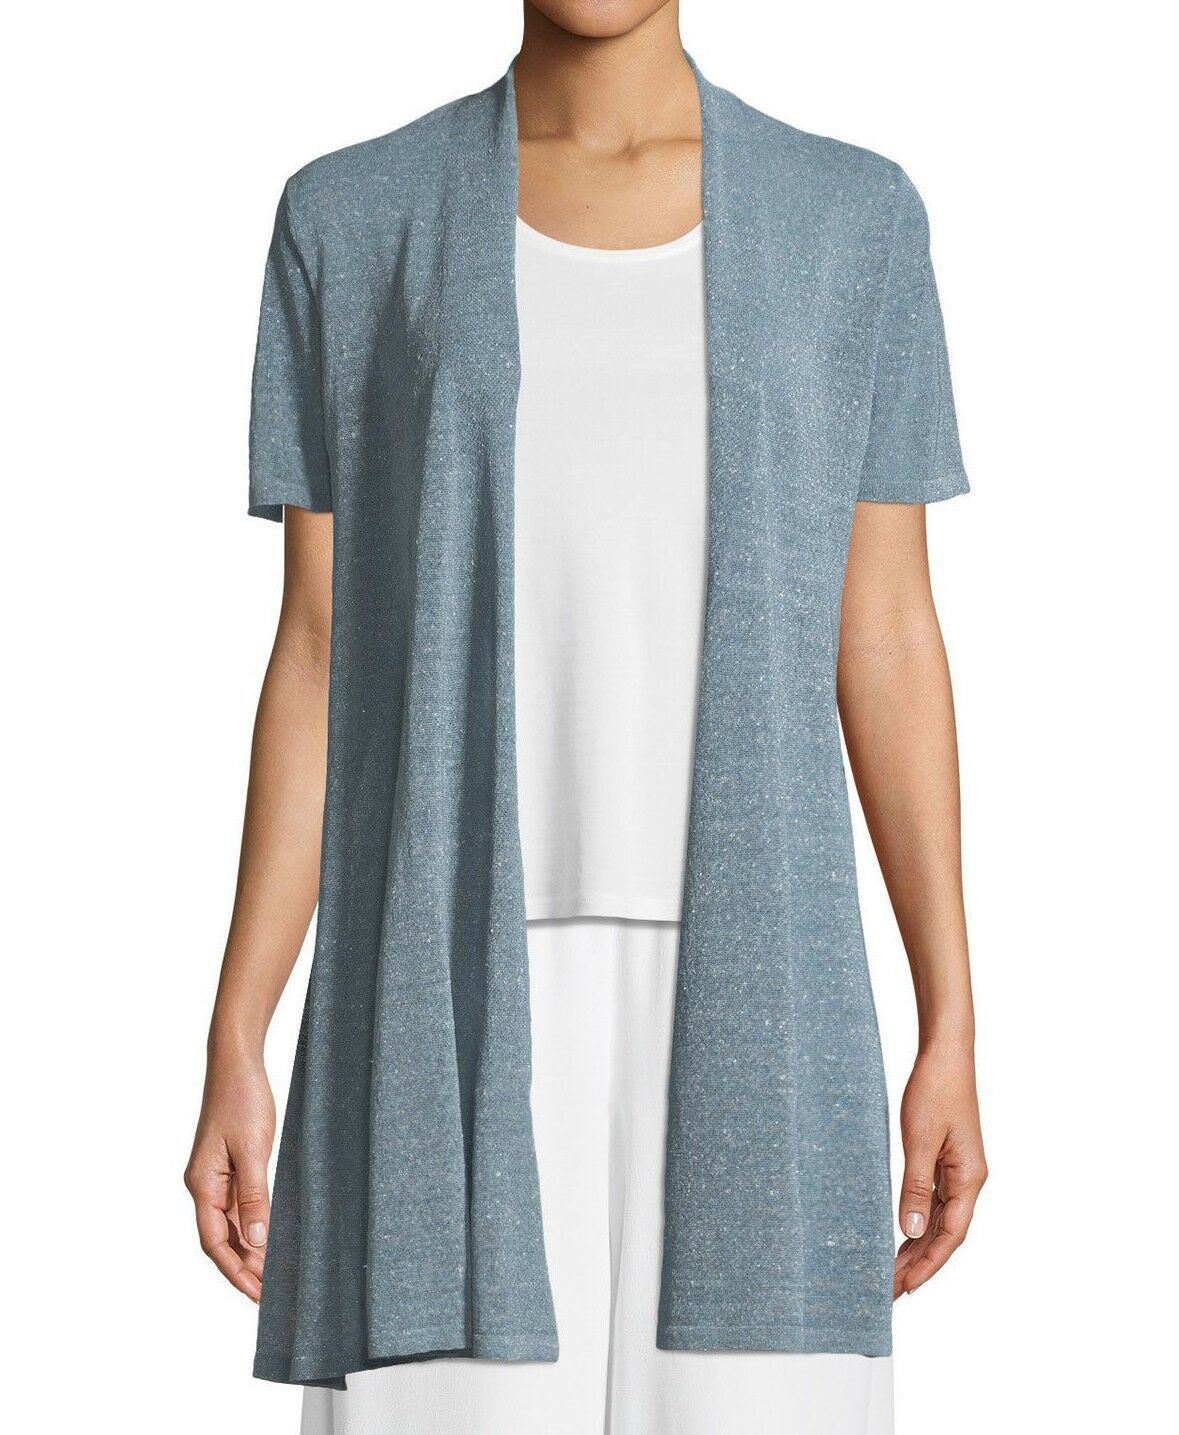 Eileen Fisher Organic Linen Crepe Shimmer Long Cardigan Petite Size PL